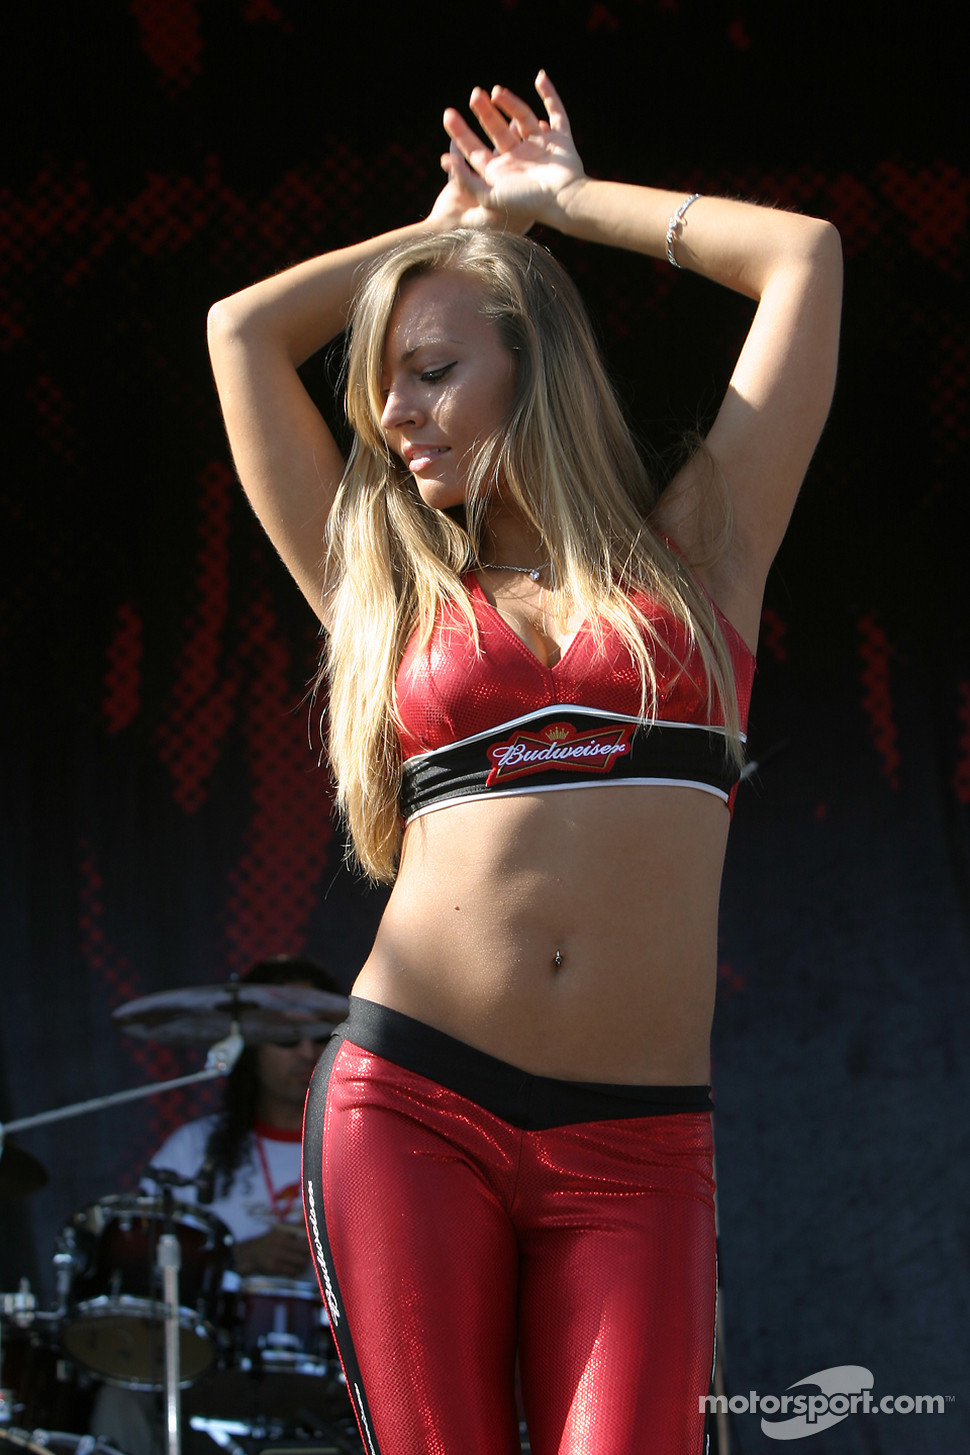 A lovely Budweiser girl entertain the fans